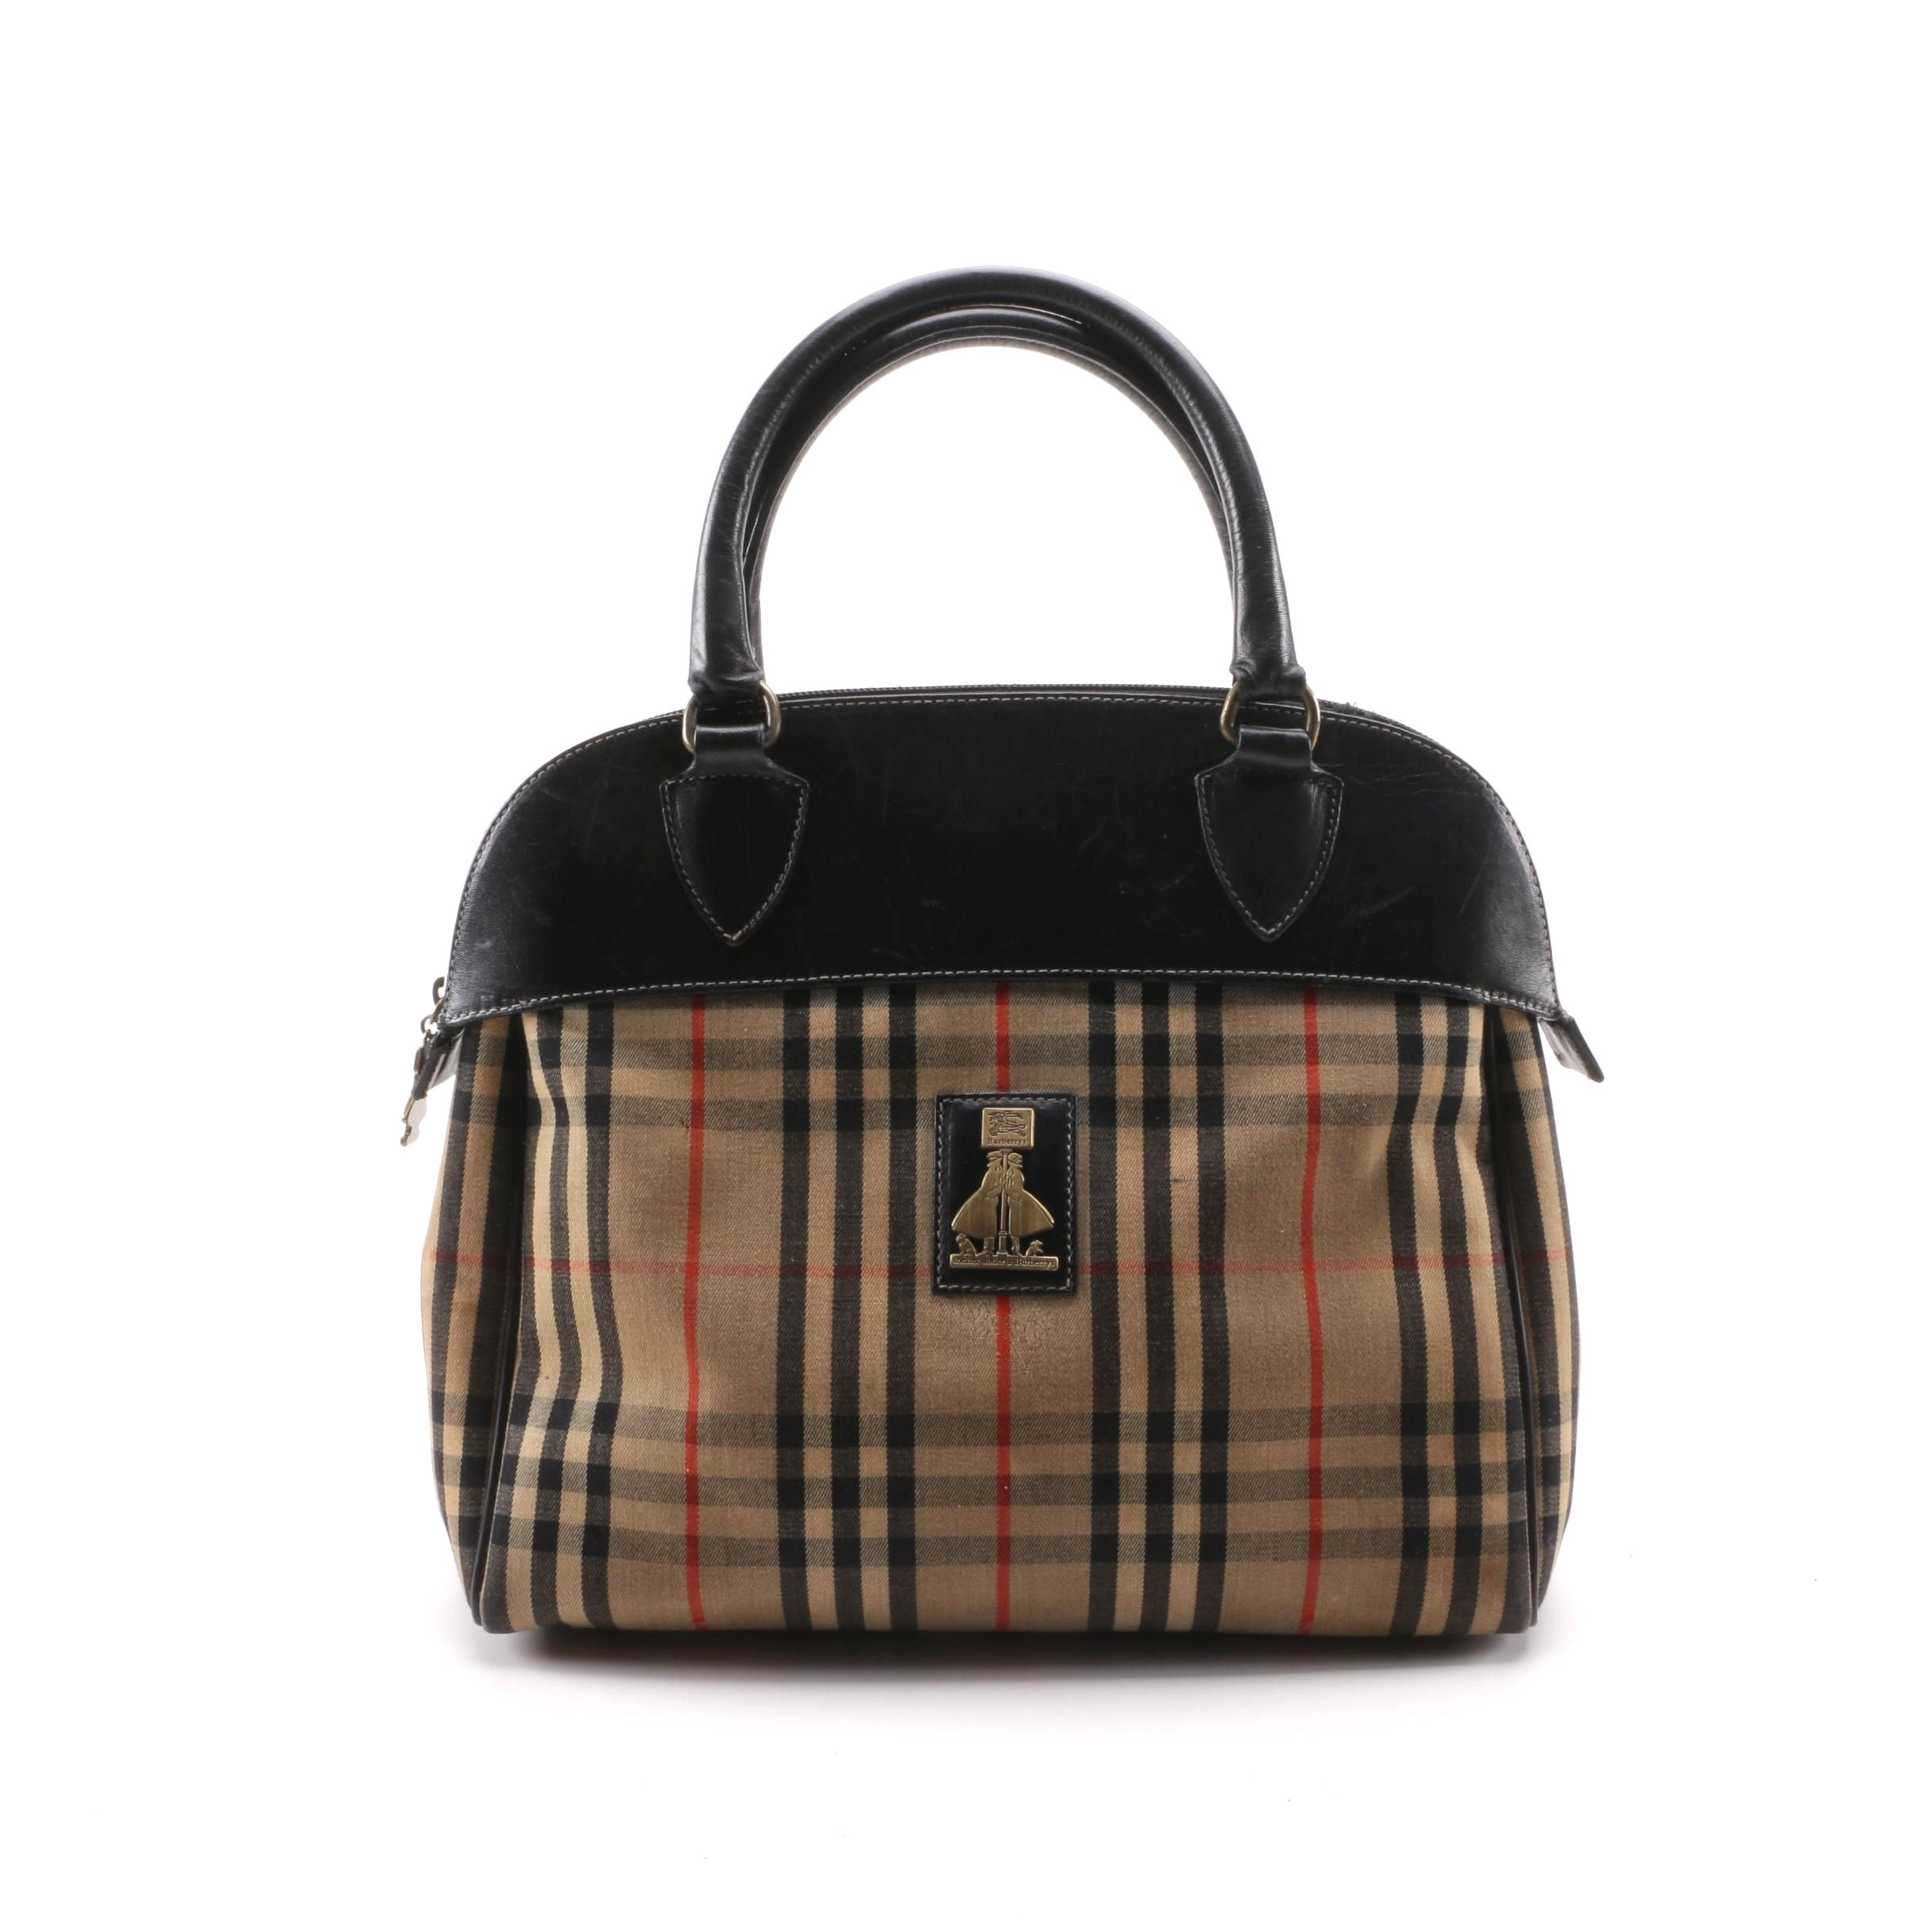 1990s Vintage Burberrys Knights Check Canvas and Leather Satchel